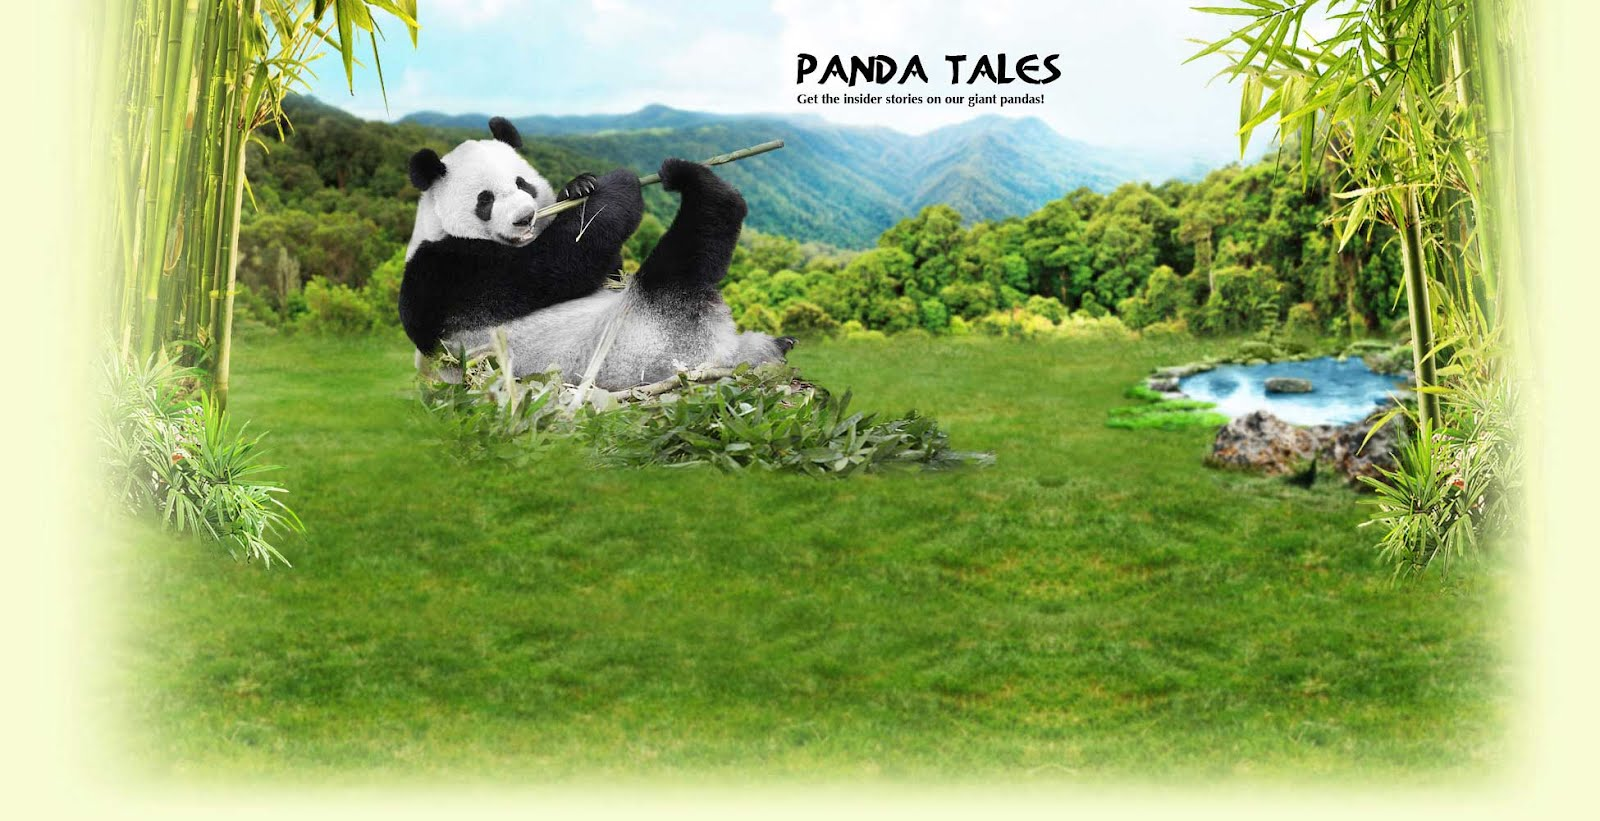 Panda TALES - Get the insider stories on our giant pandas!